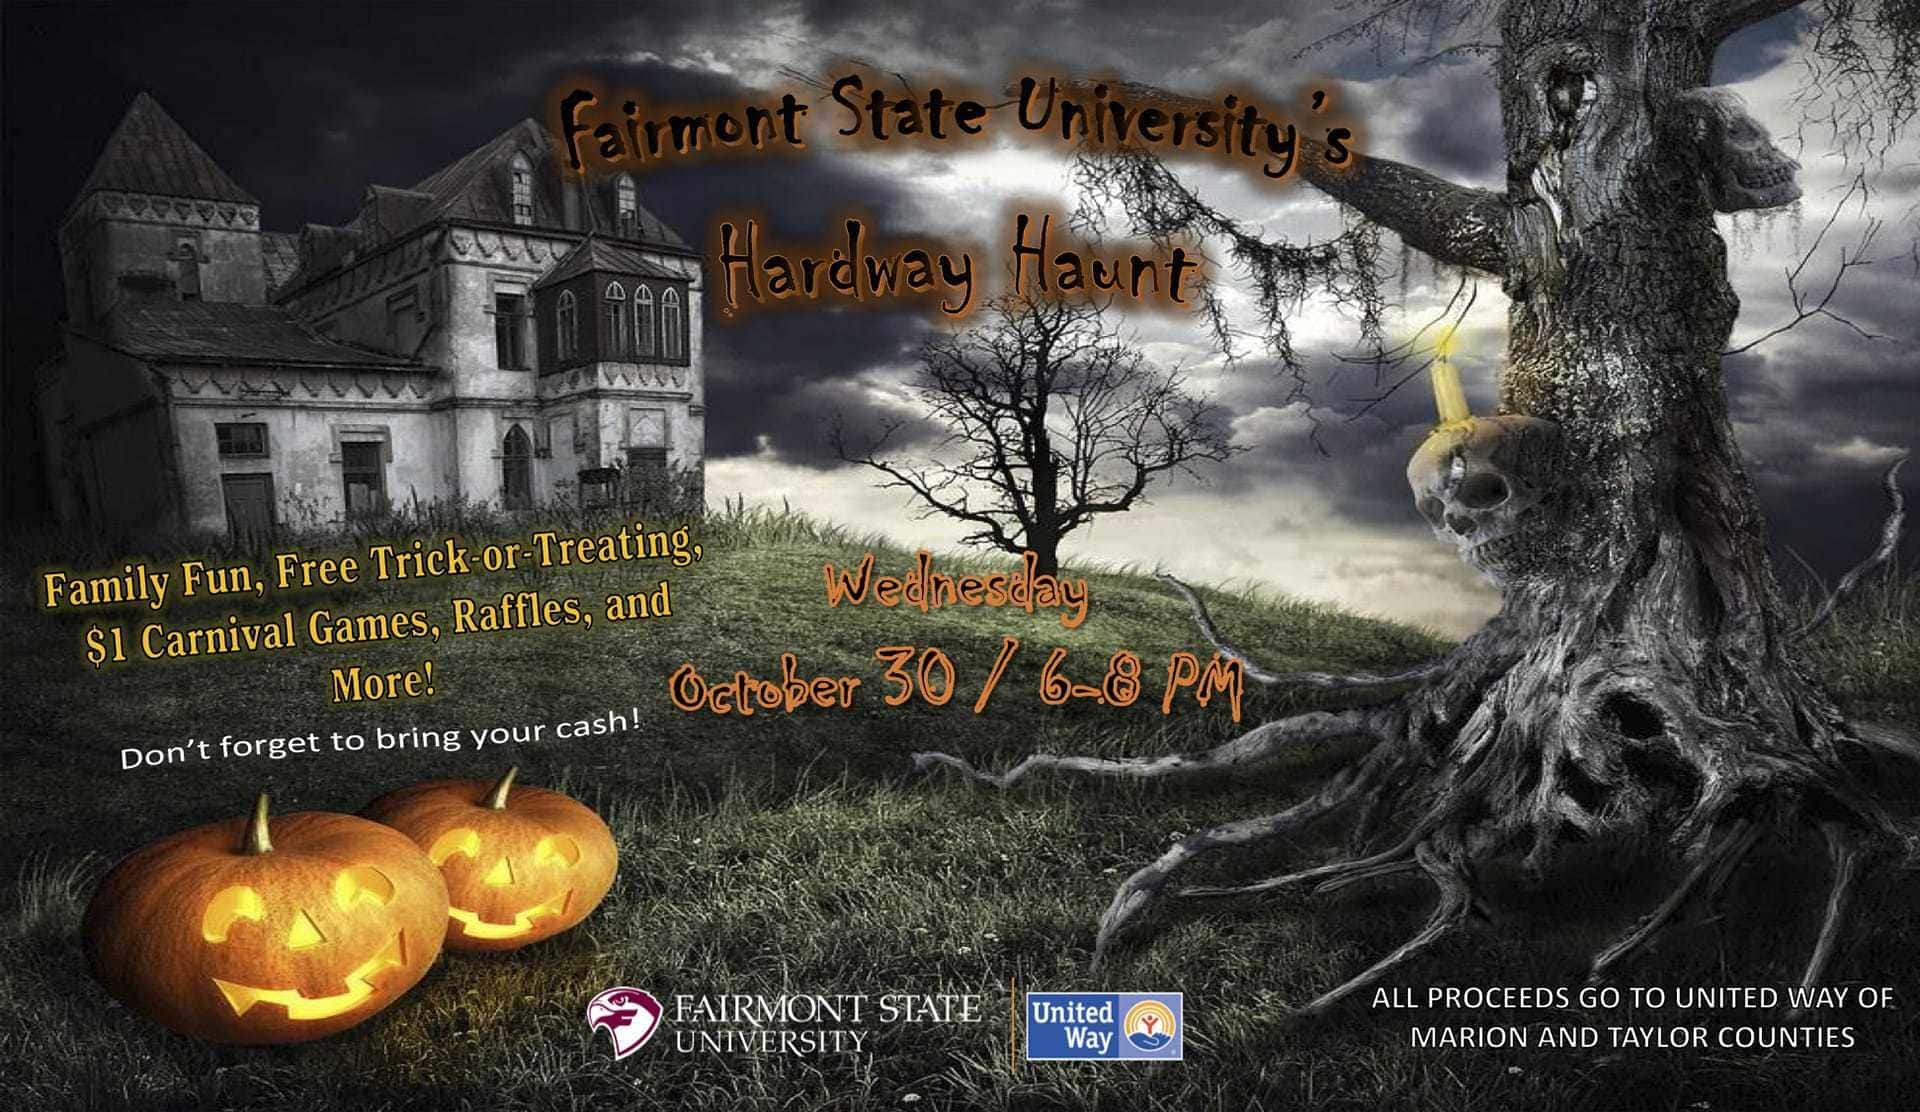 Fairmont State to host Hardway Haunt for second year